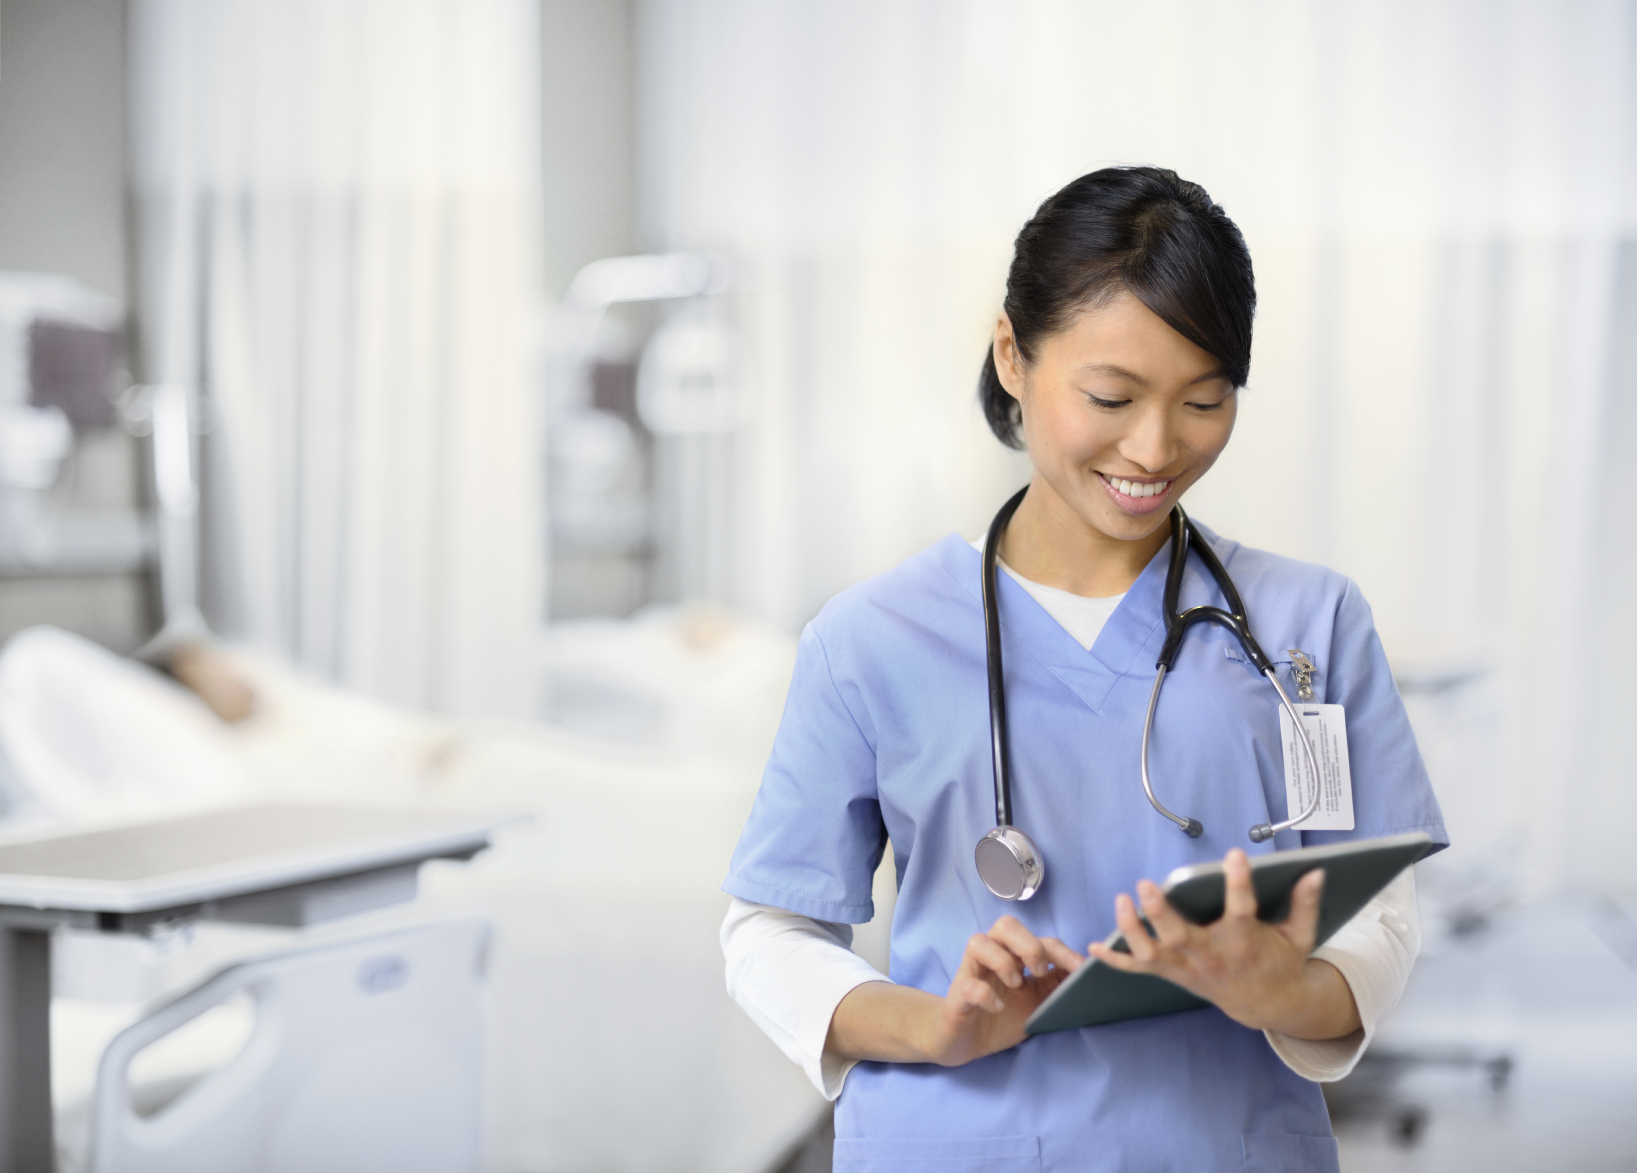 healthcare utilization of nurse practicioners Five separate studies concluded that nurse practitioners (nps) expand  the  expansion of health care utilization when provider supply grows.